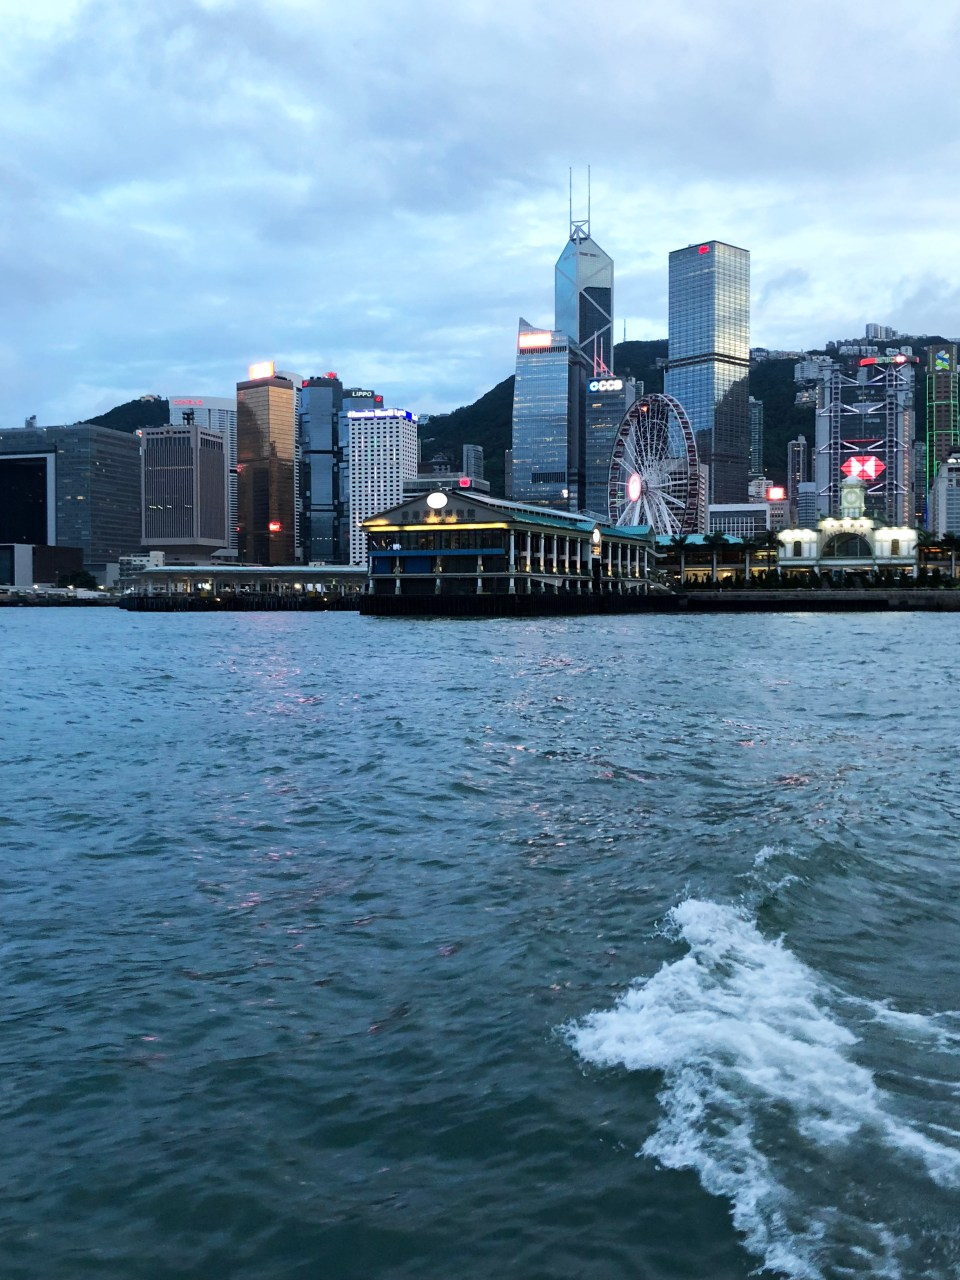 Riding Star Ferry